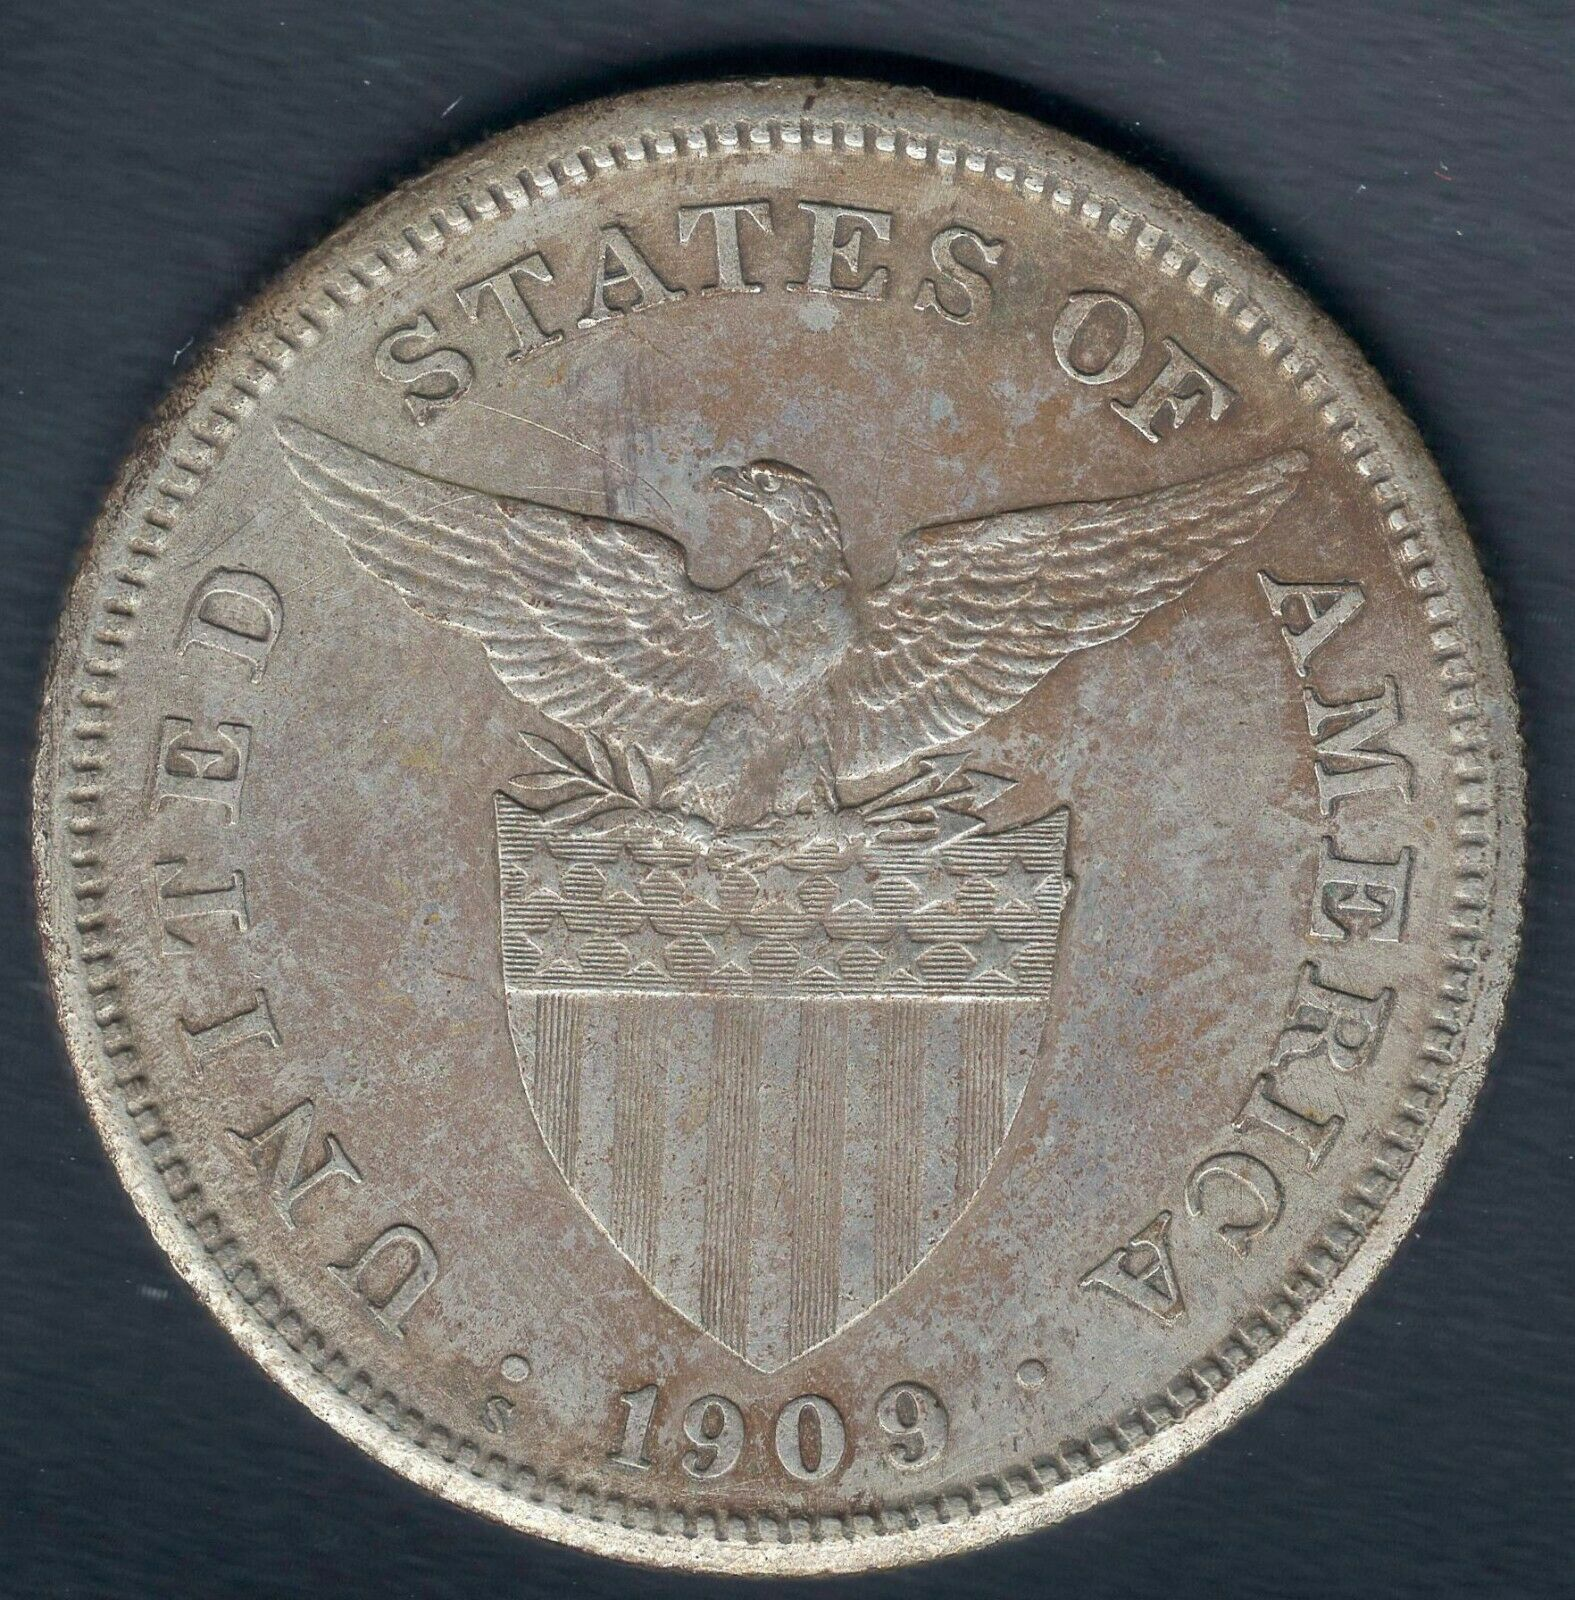 1909 S Philippines One Peso Silver - High Grade TONED - BEAUTY - HI RES SCANS  - $57.00